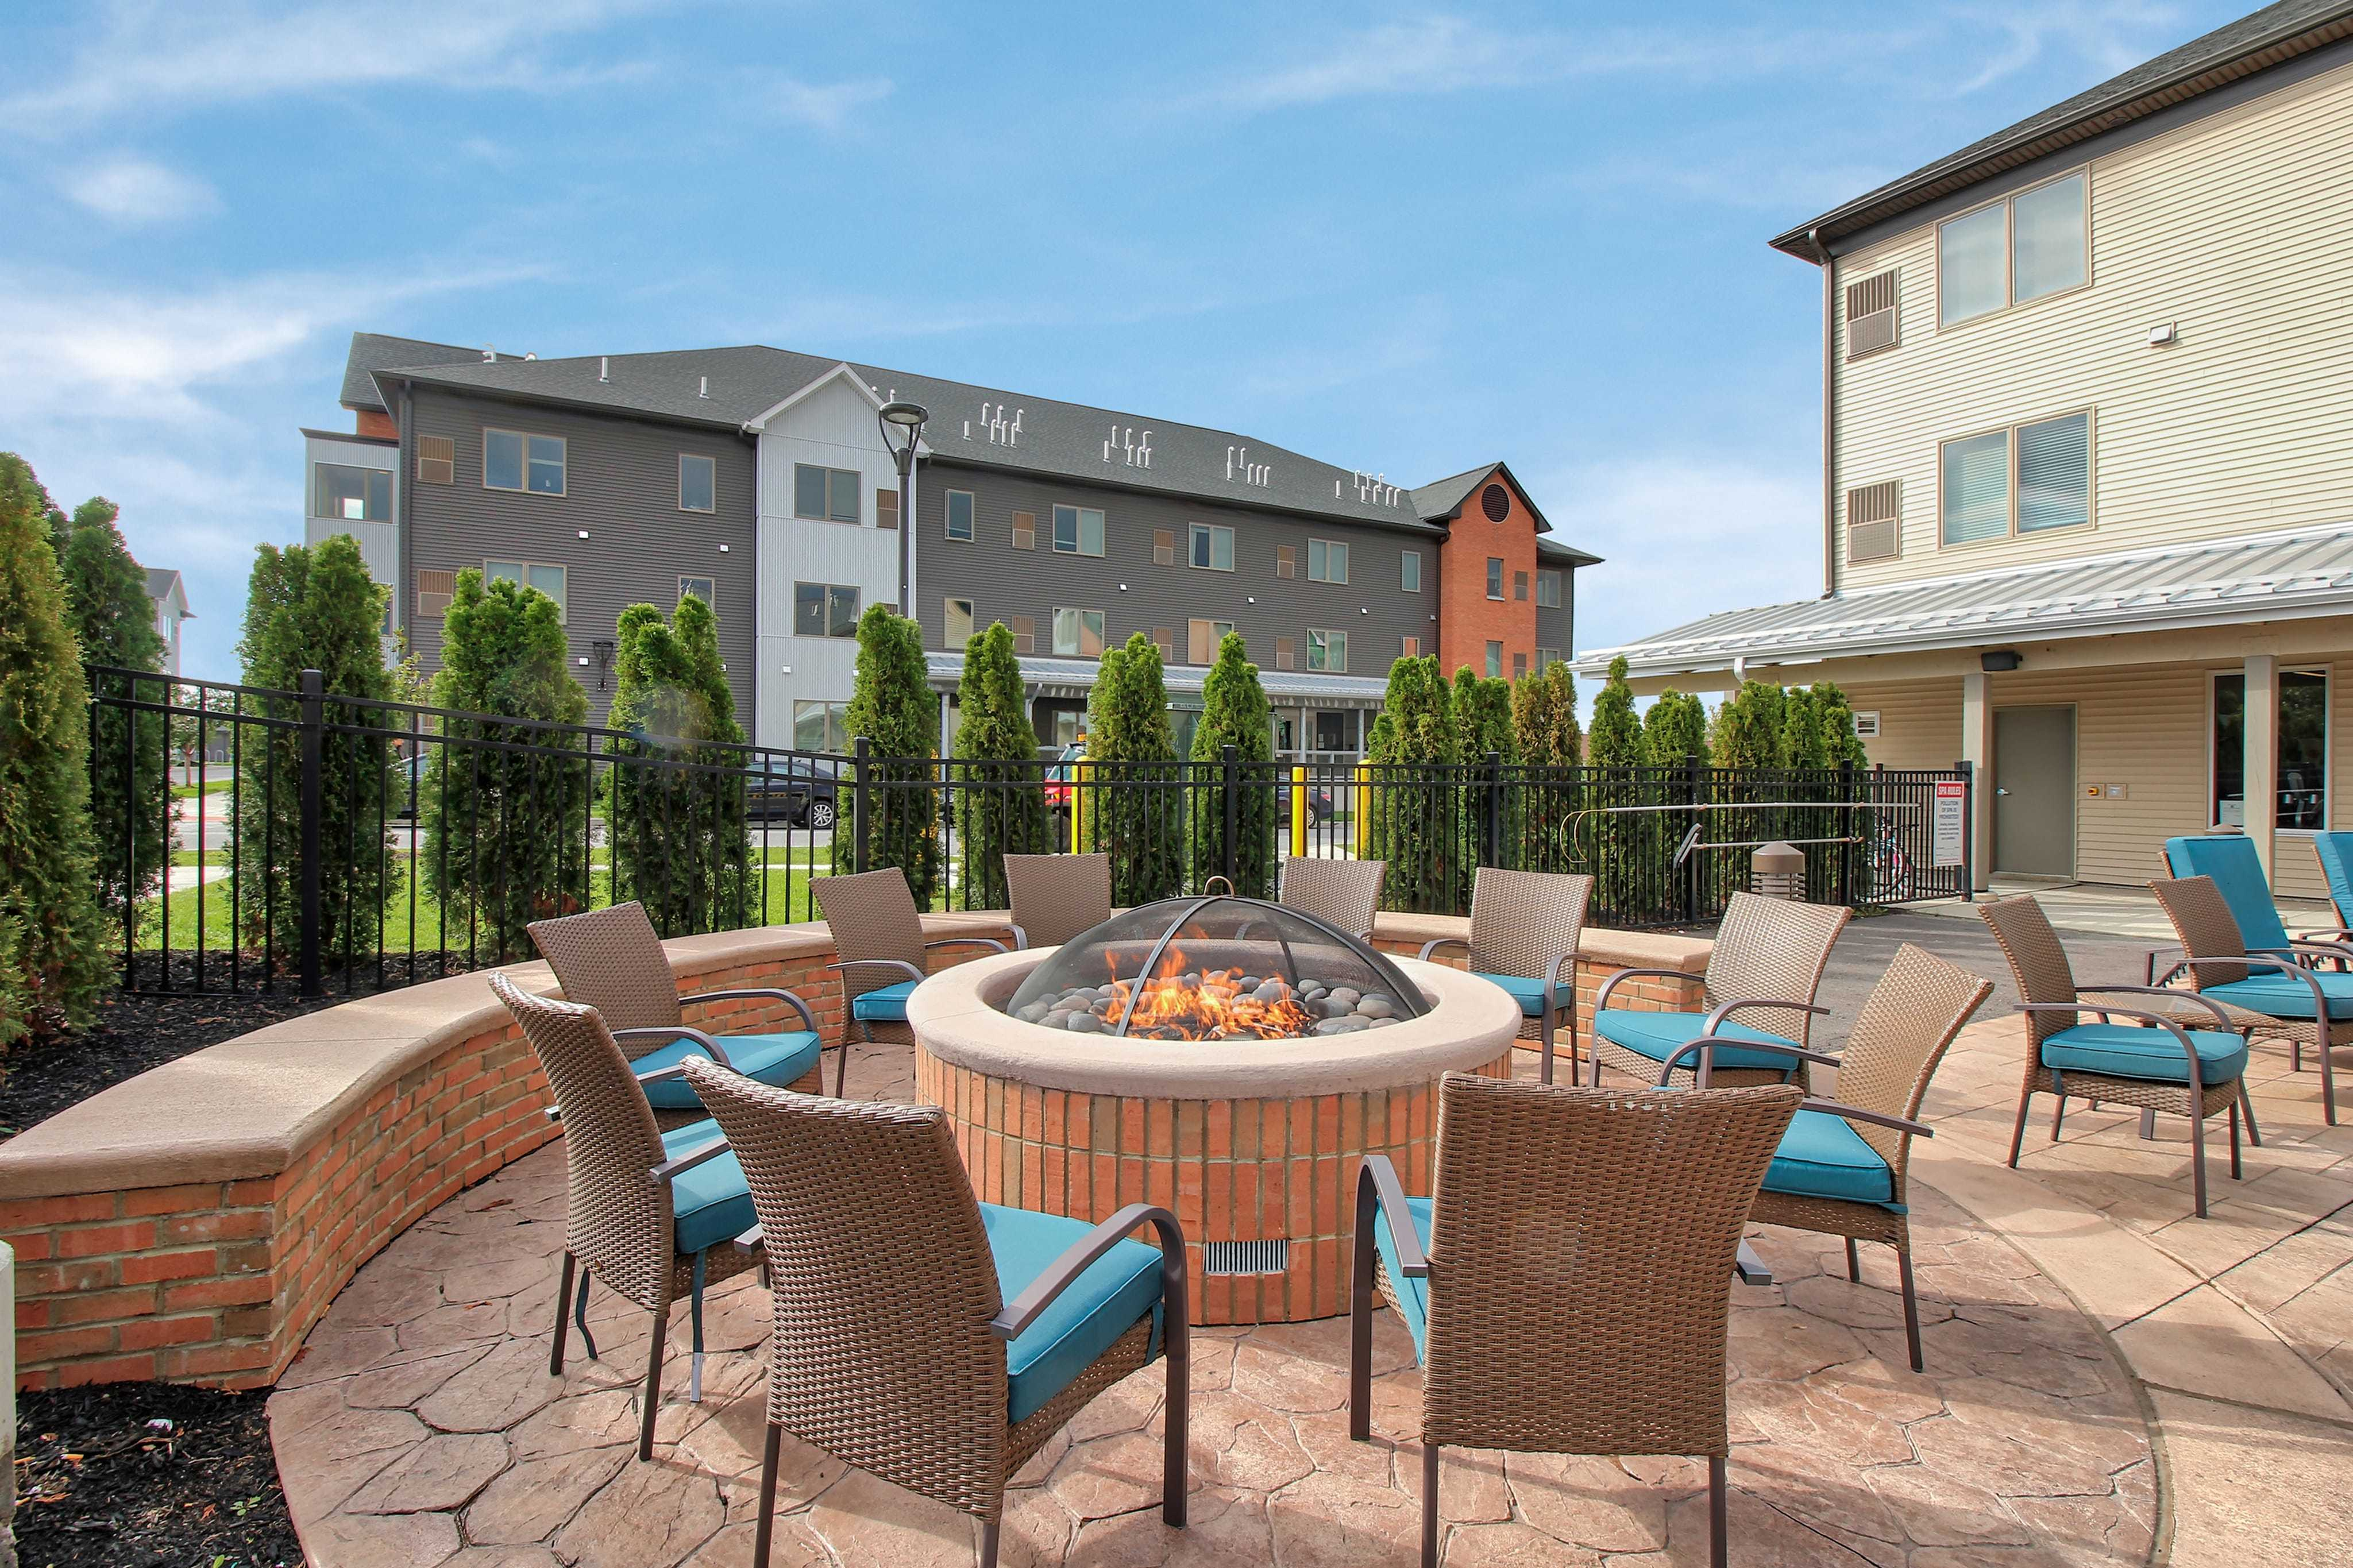 Apartments Near Hilbert Axis 360 for Hilbert College Students in Hamburg, NY